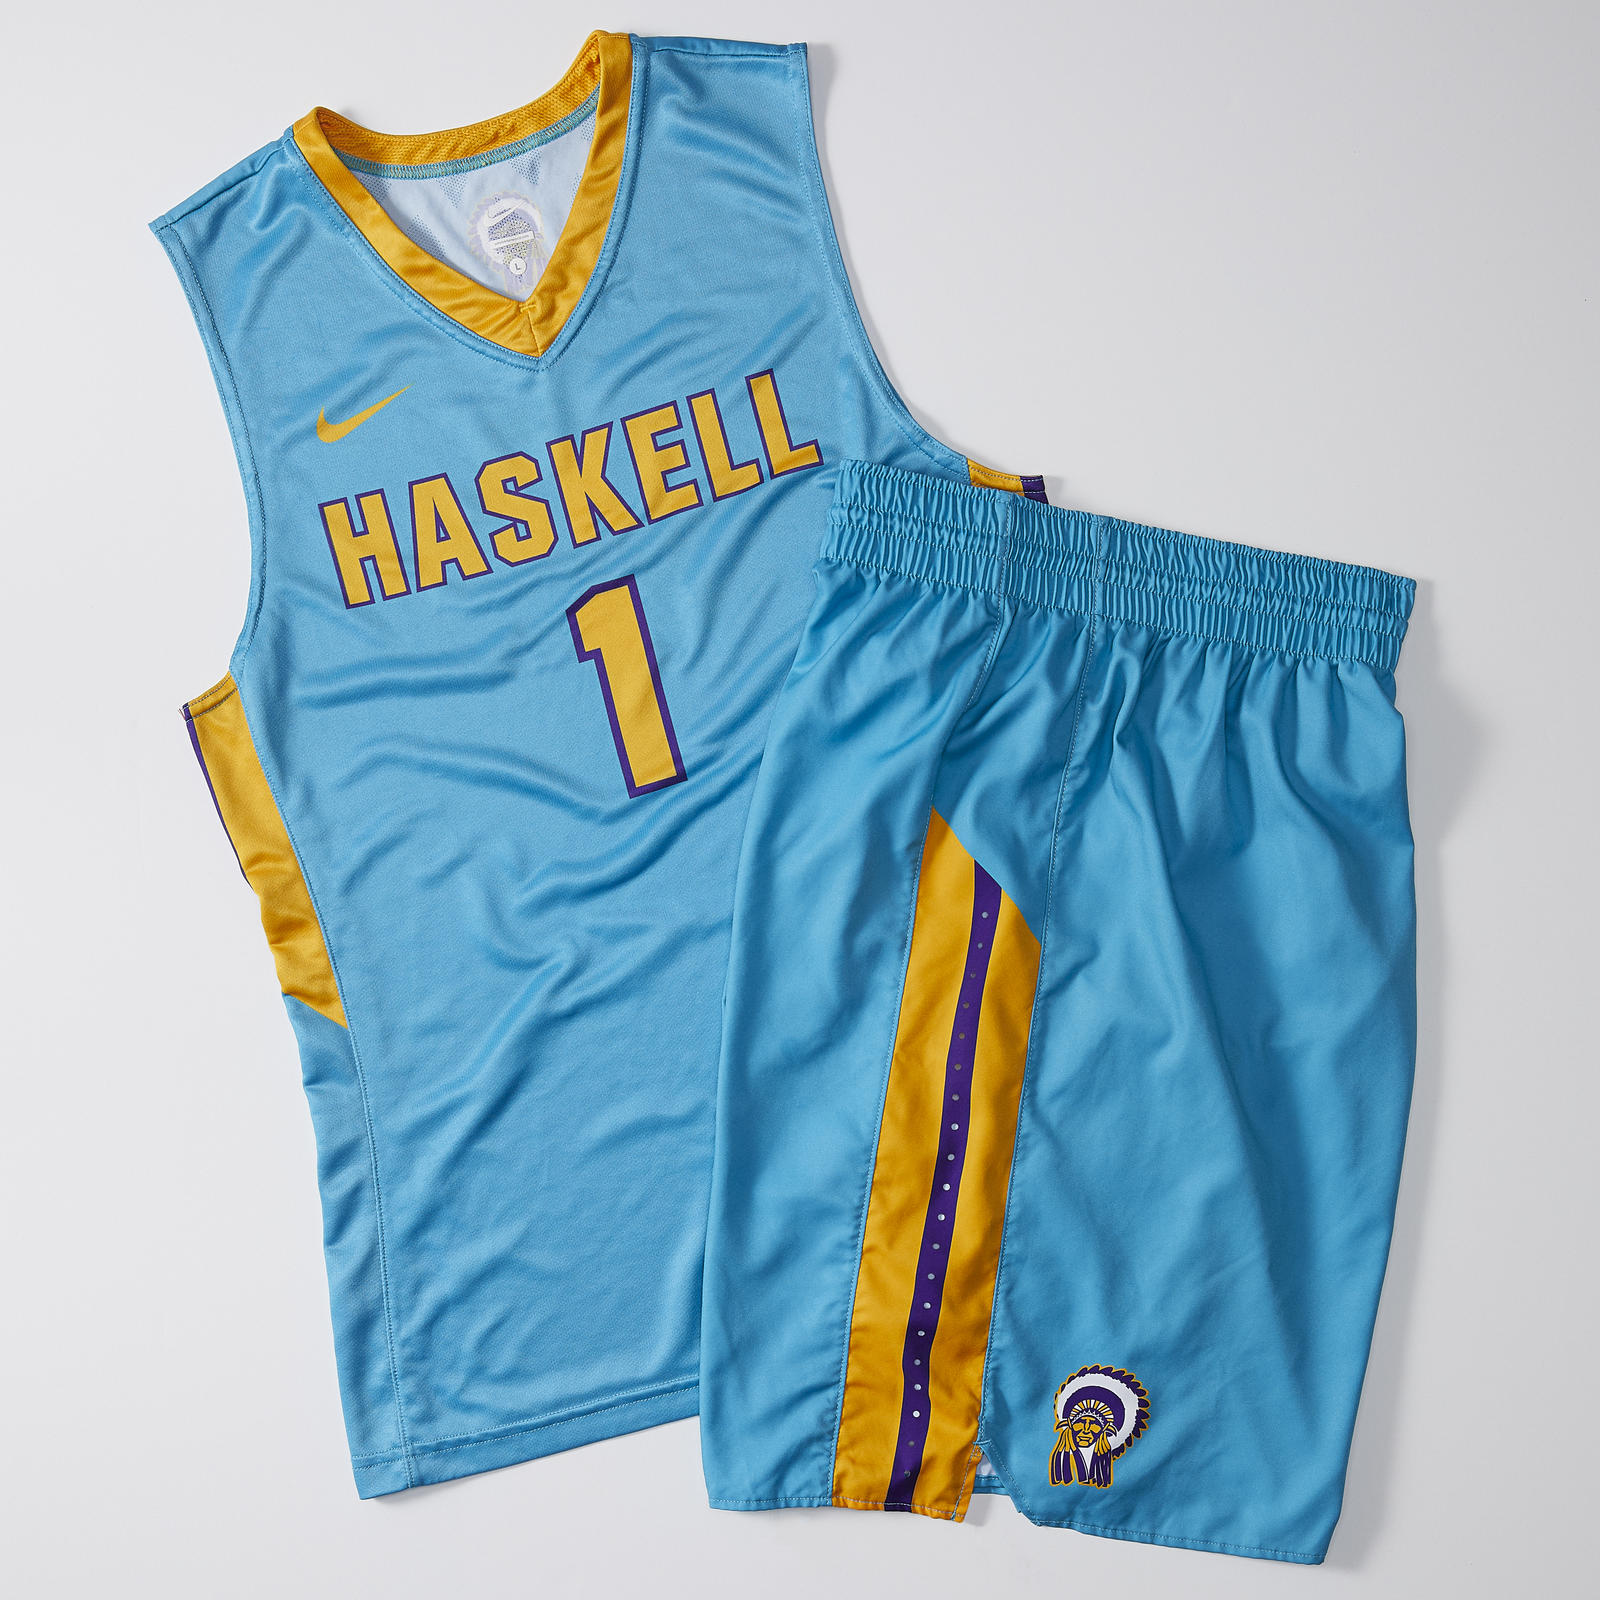 The Nike N7 College Basketball Uniform: More Than a Turquoise Jersey 1